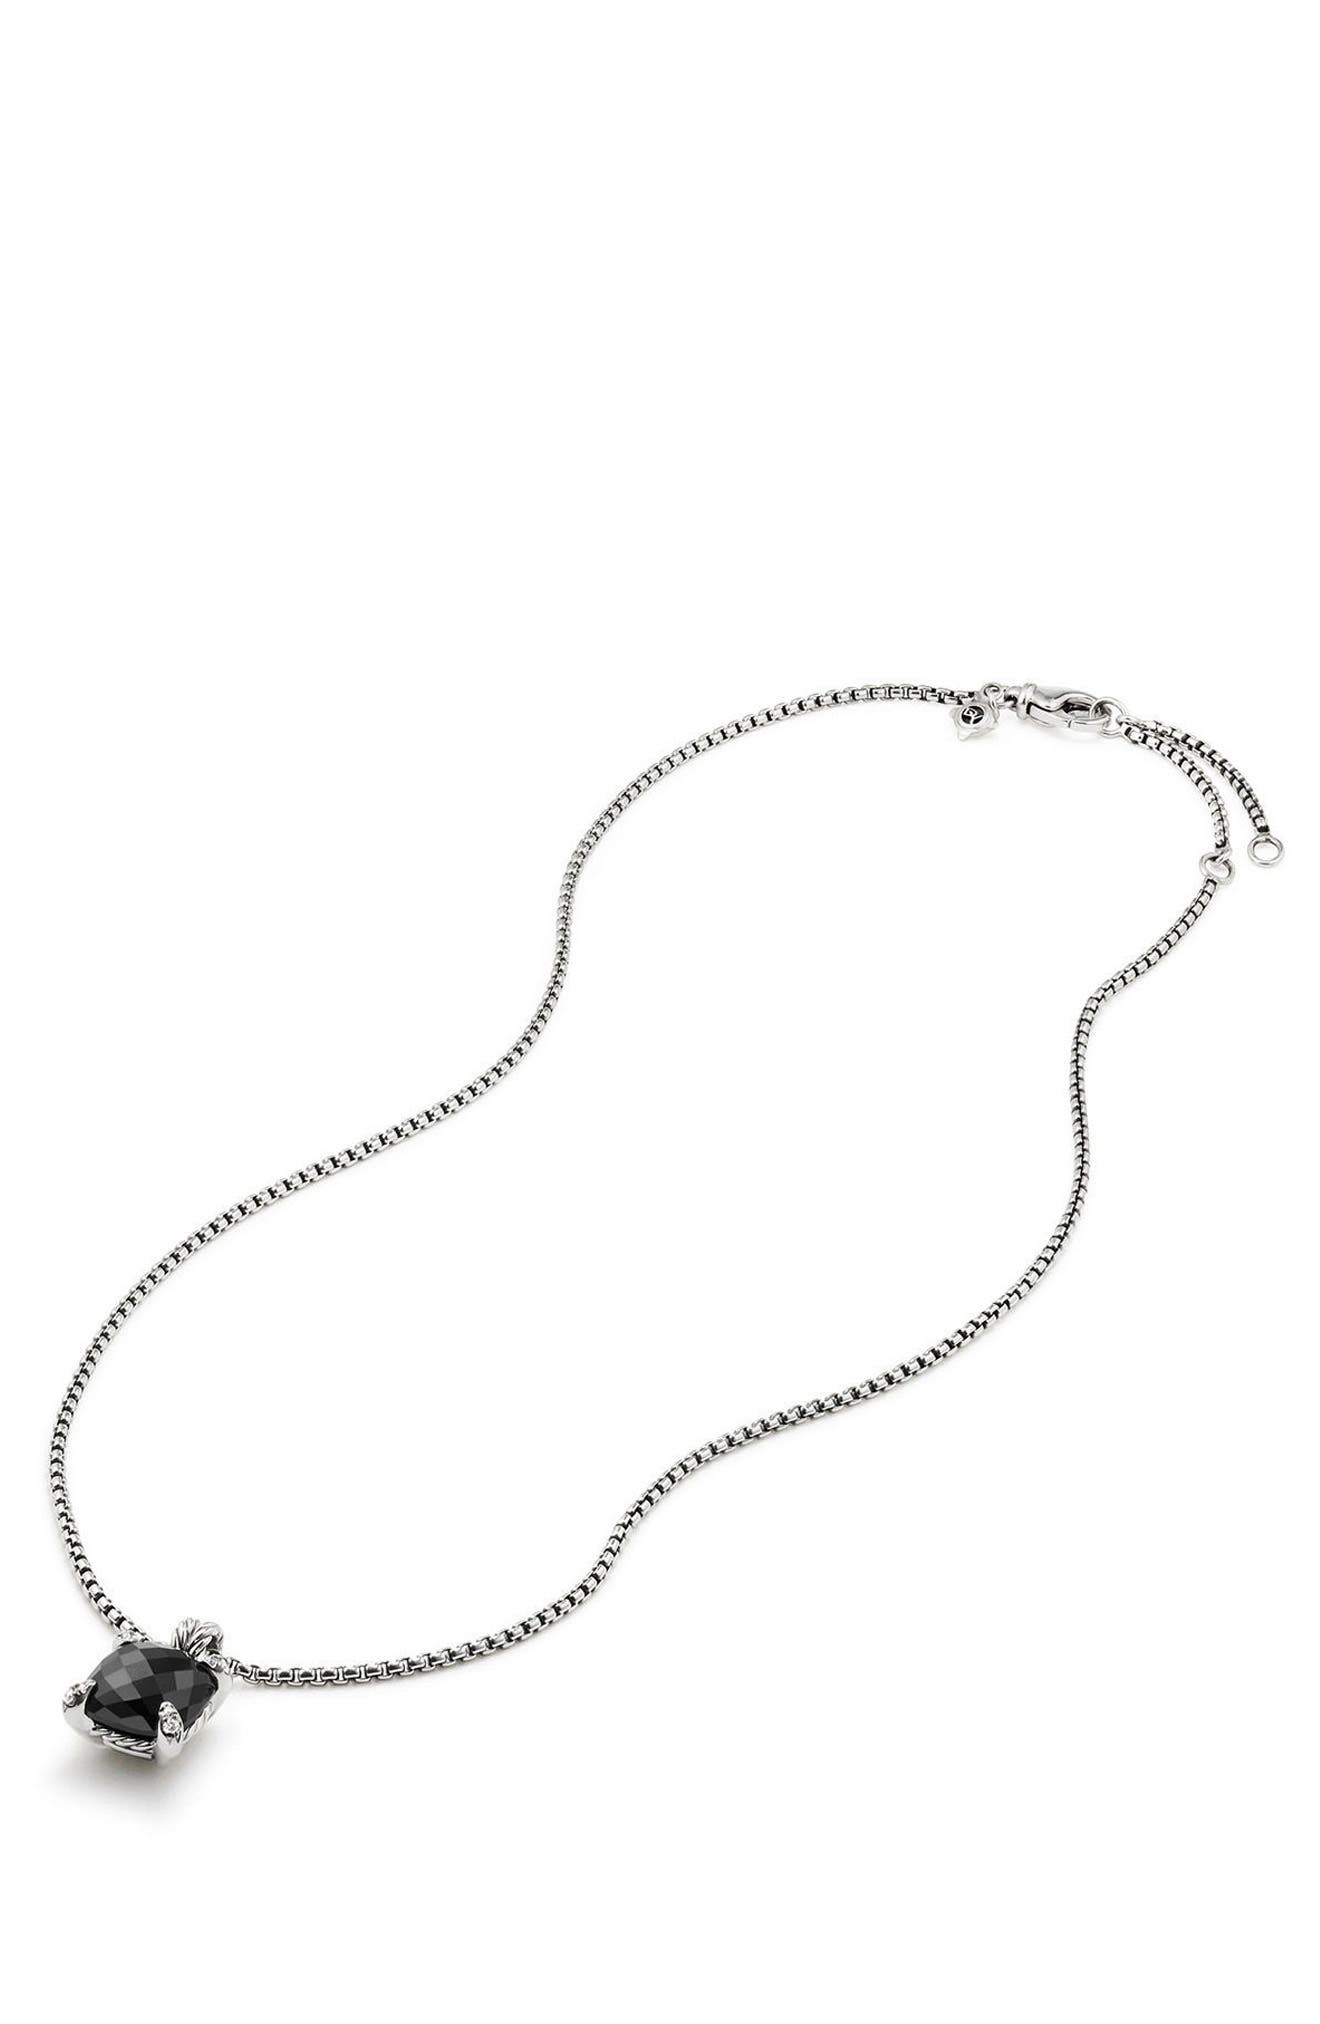 Main Image - David Yurman Châtelaine Pendant Necklace with Black Onyx and Diamonds